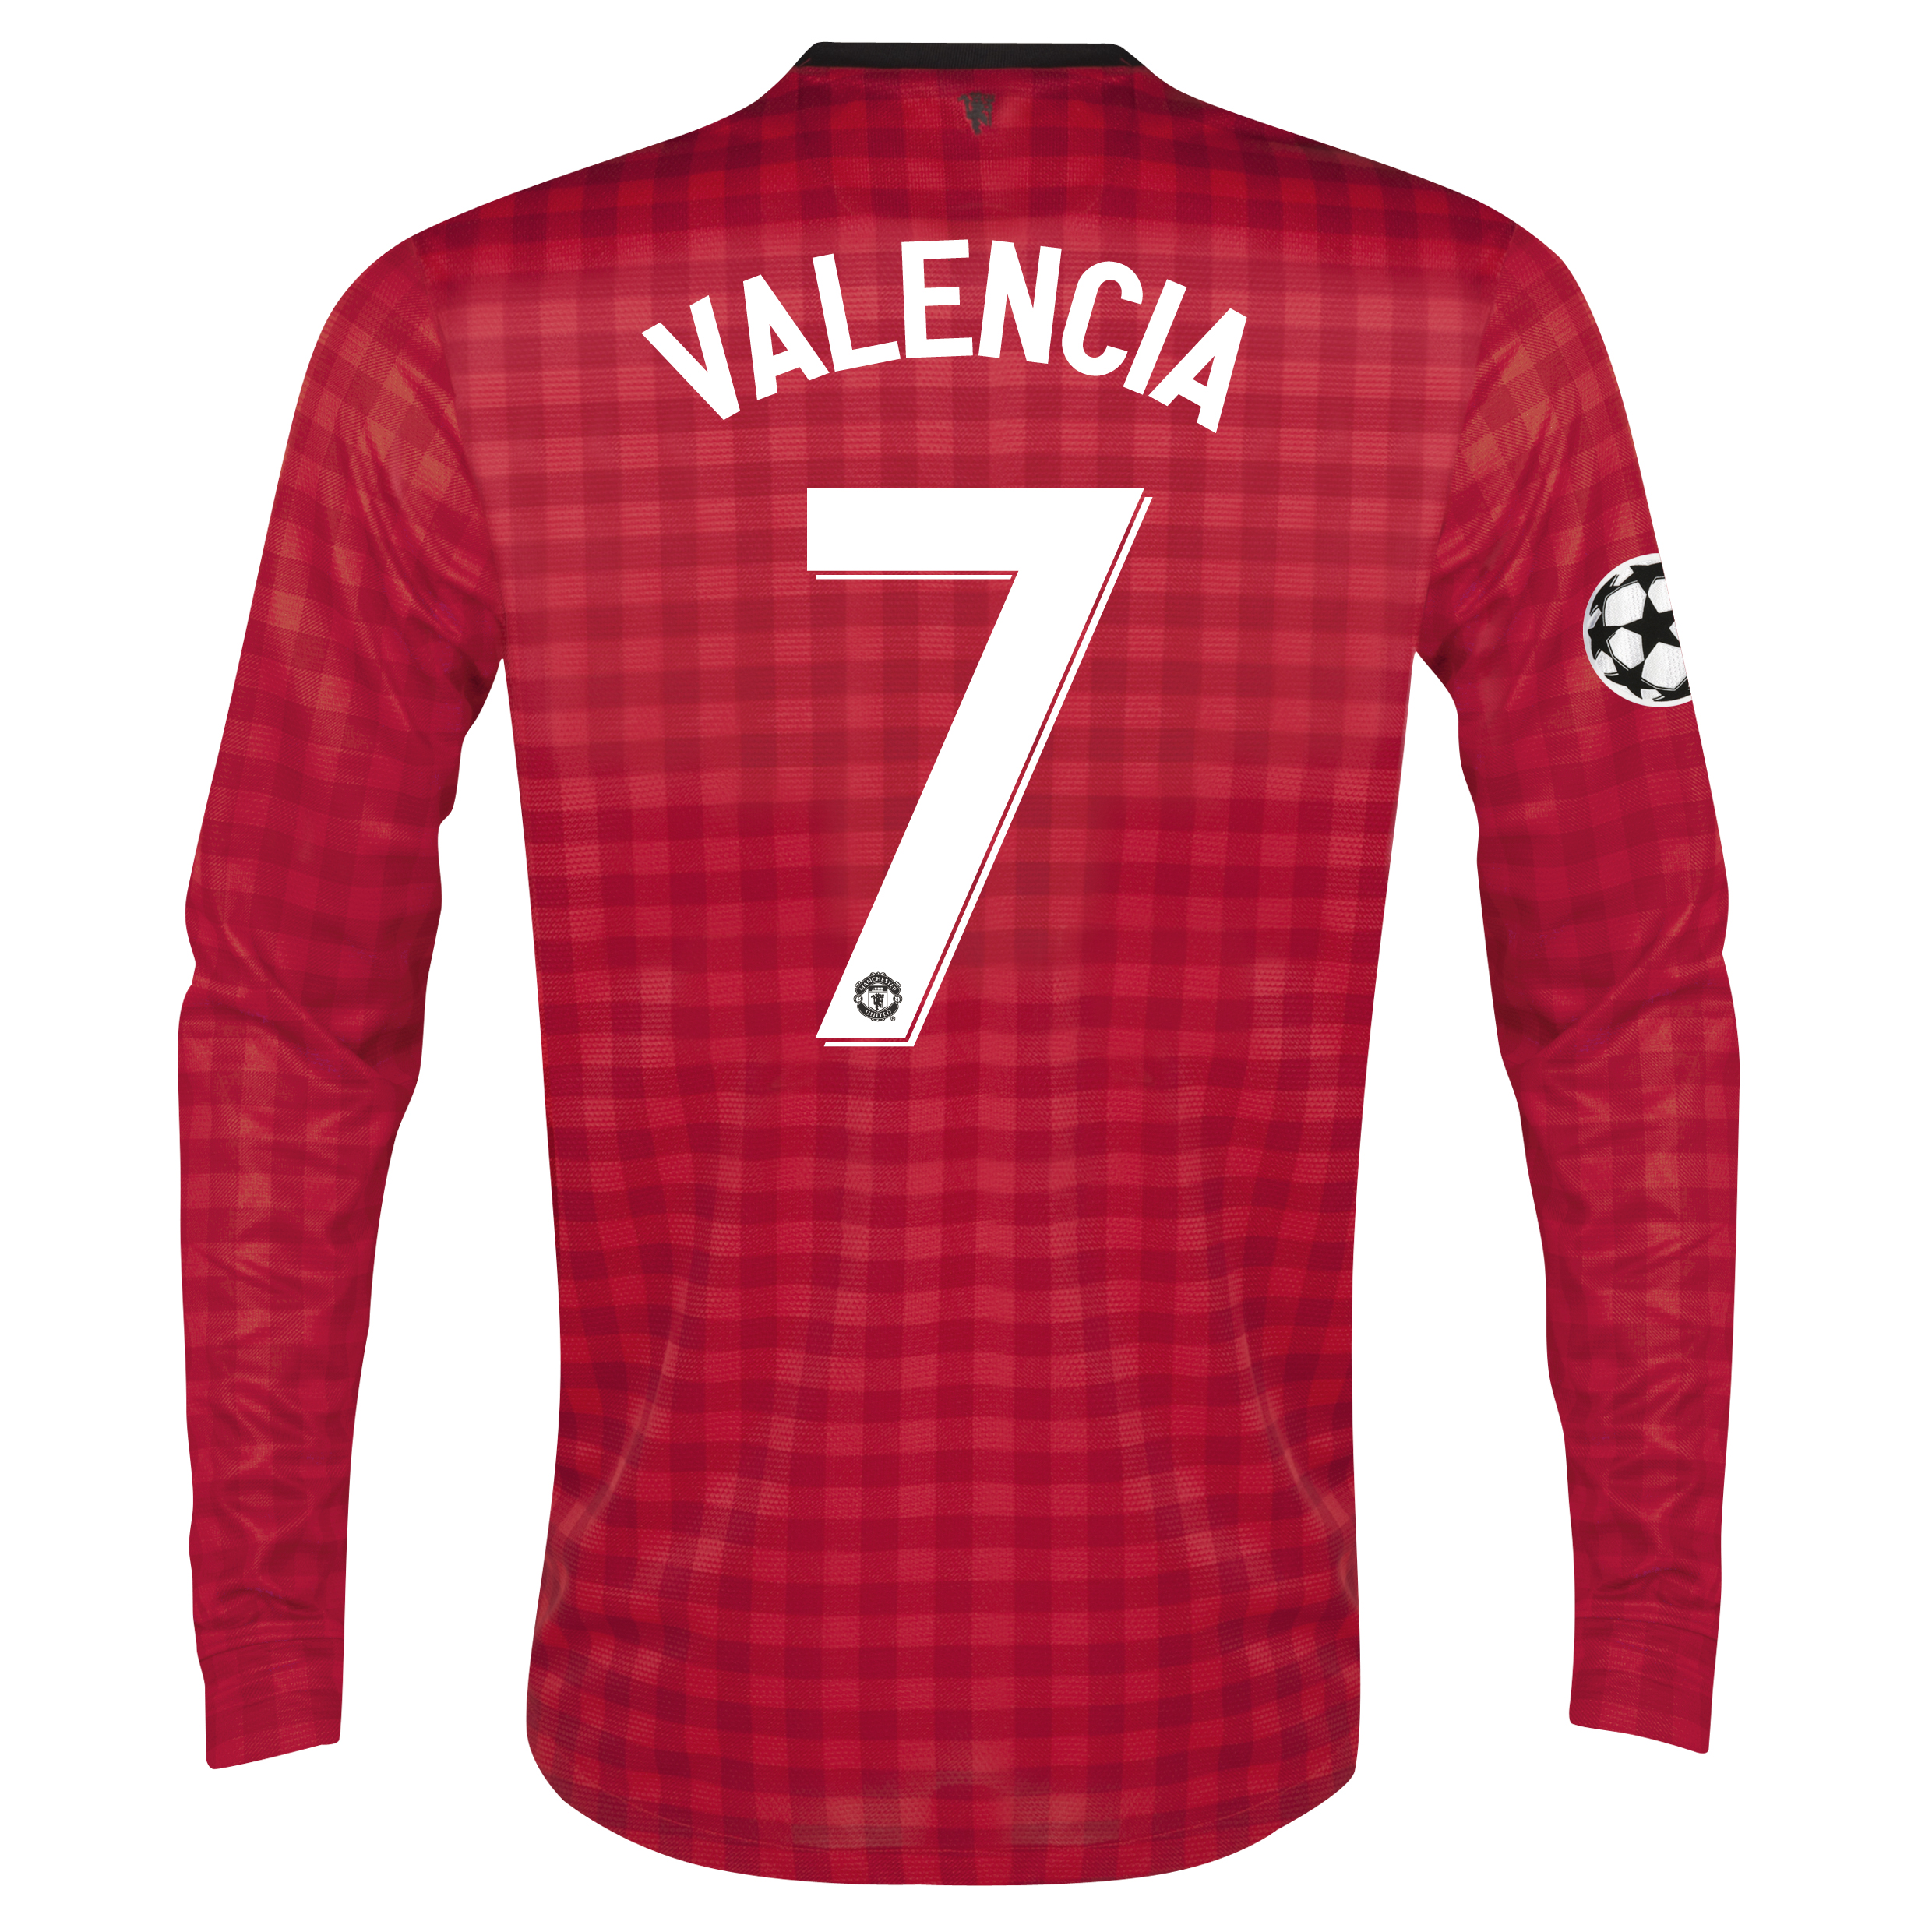 Man United UEFA Champions League Home Shirt 2012/13 - Long Sleeved with Valencia 7 printing